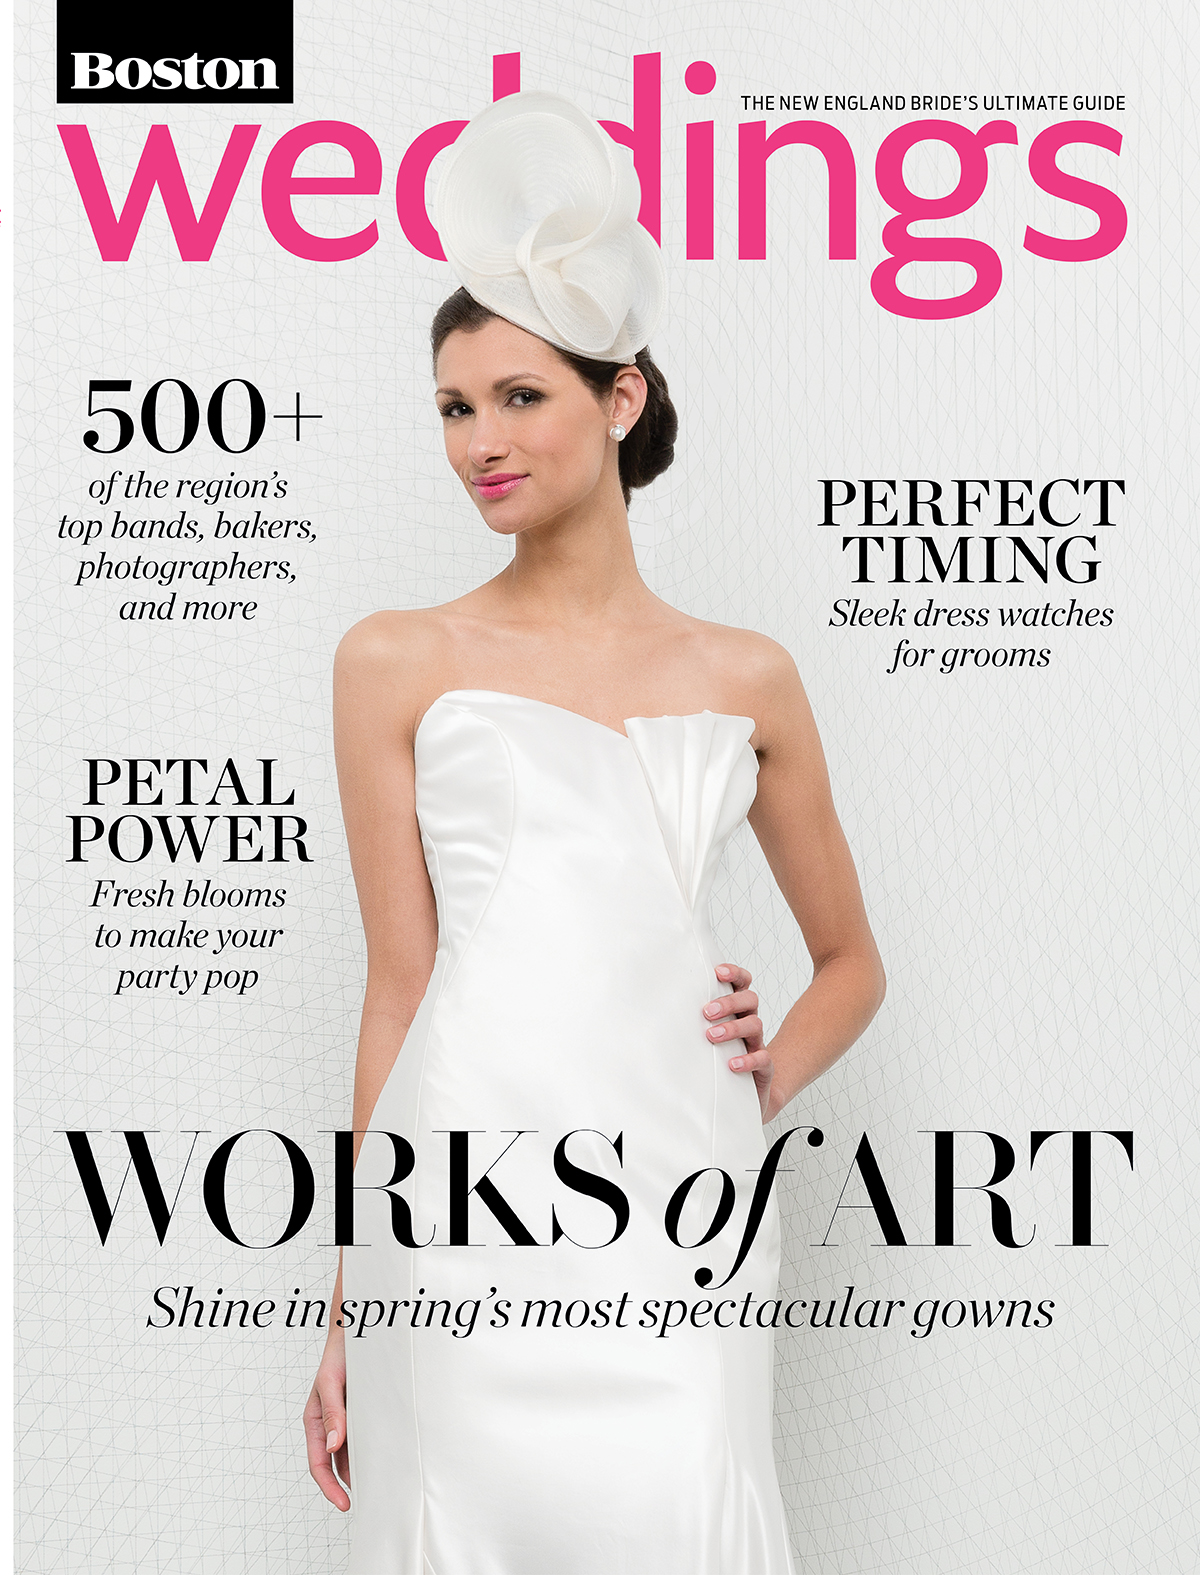 WEDDINGS: How To Look Your Best